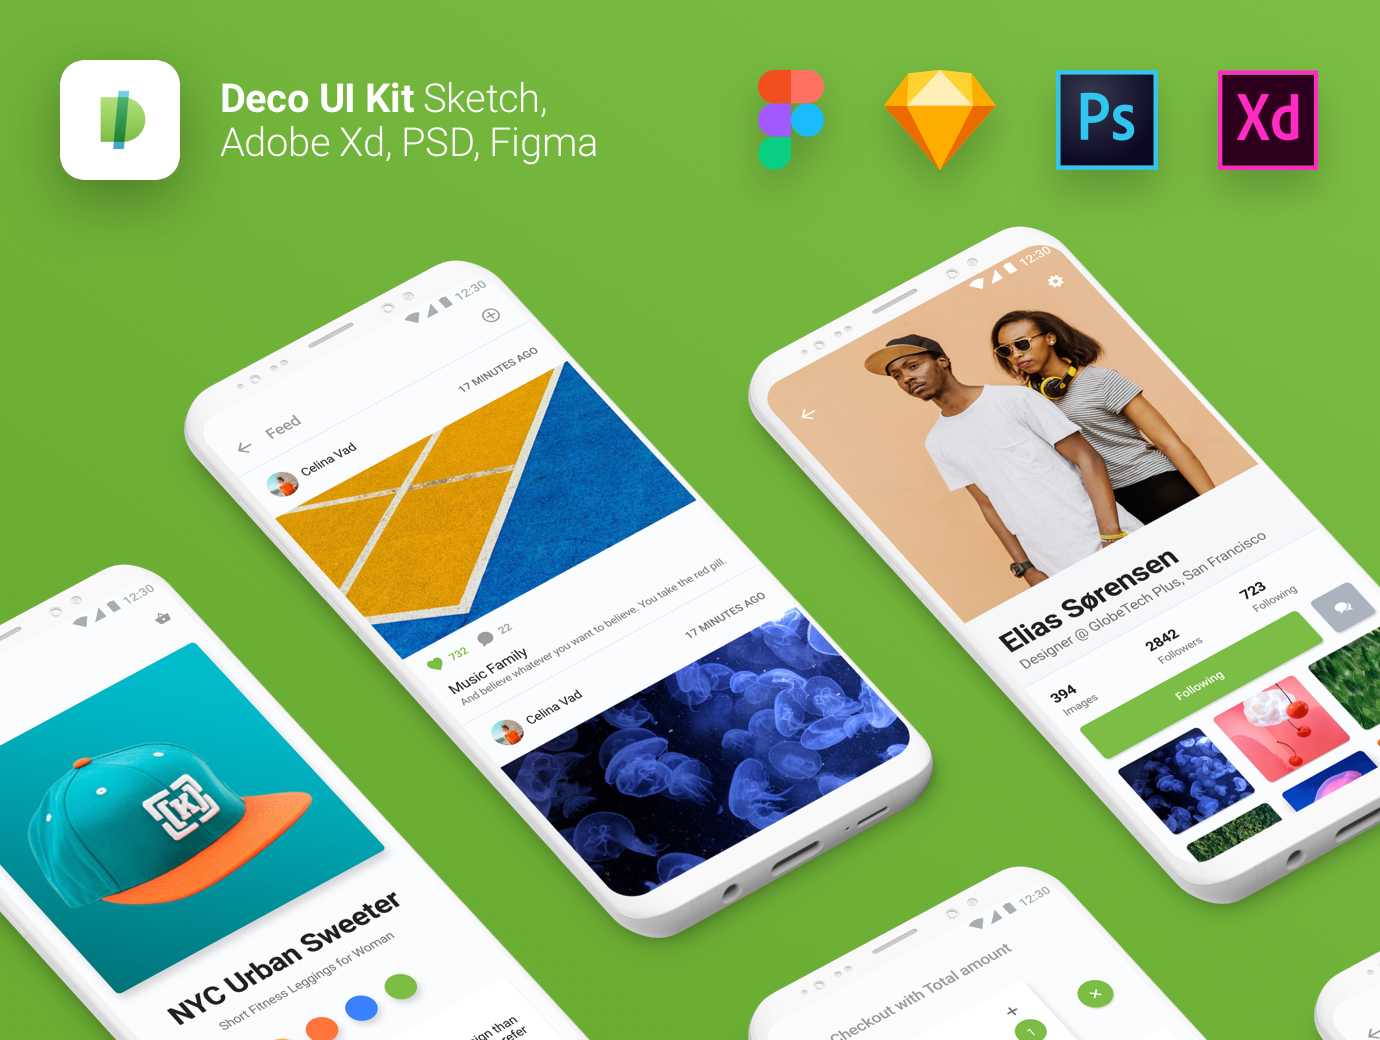 Deco UI Kit for Adobe Xd, Photoshop, Sketch & Figma